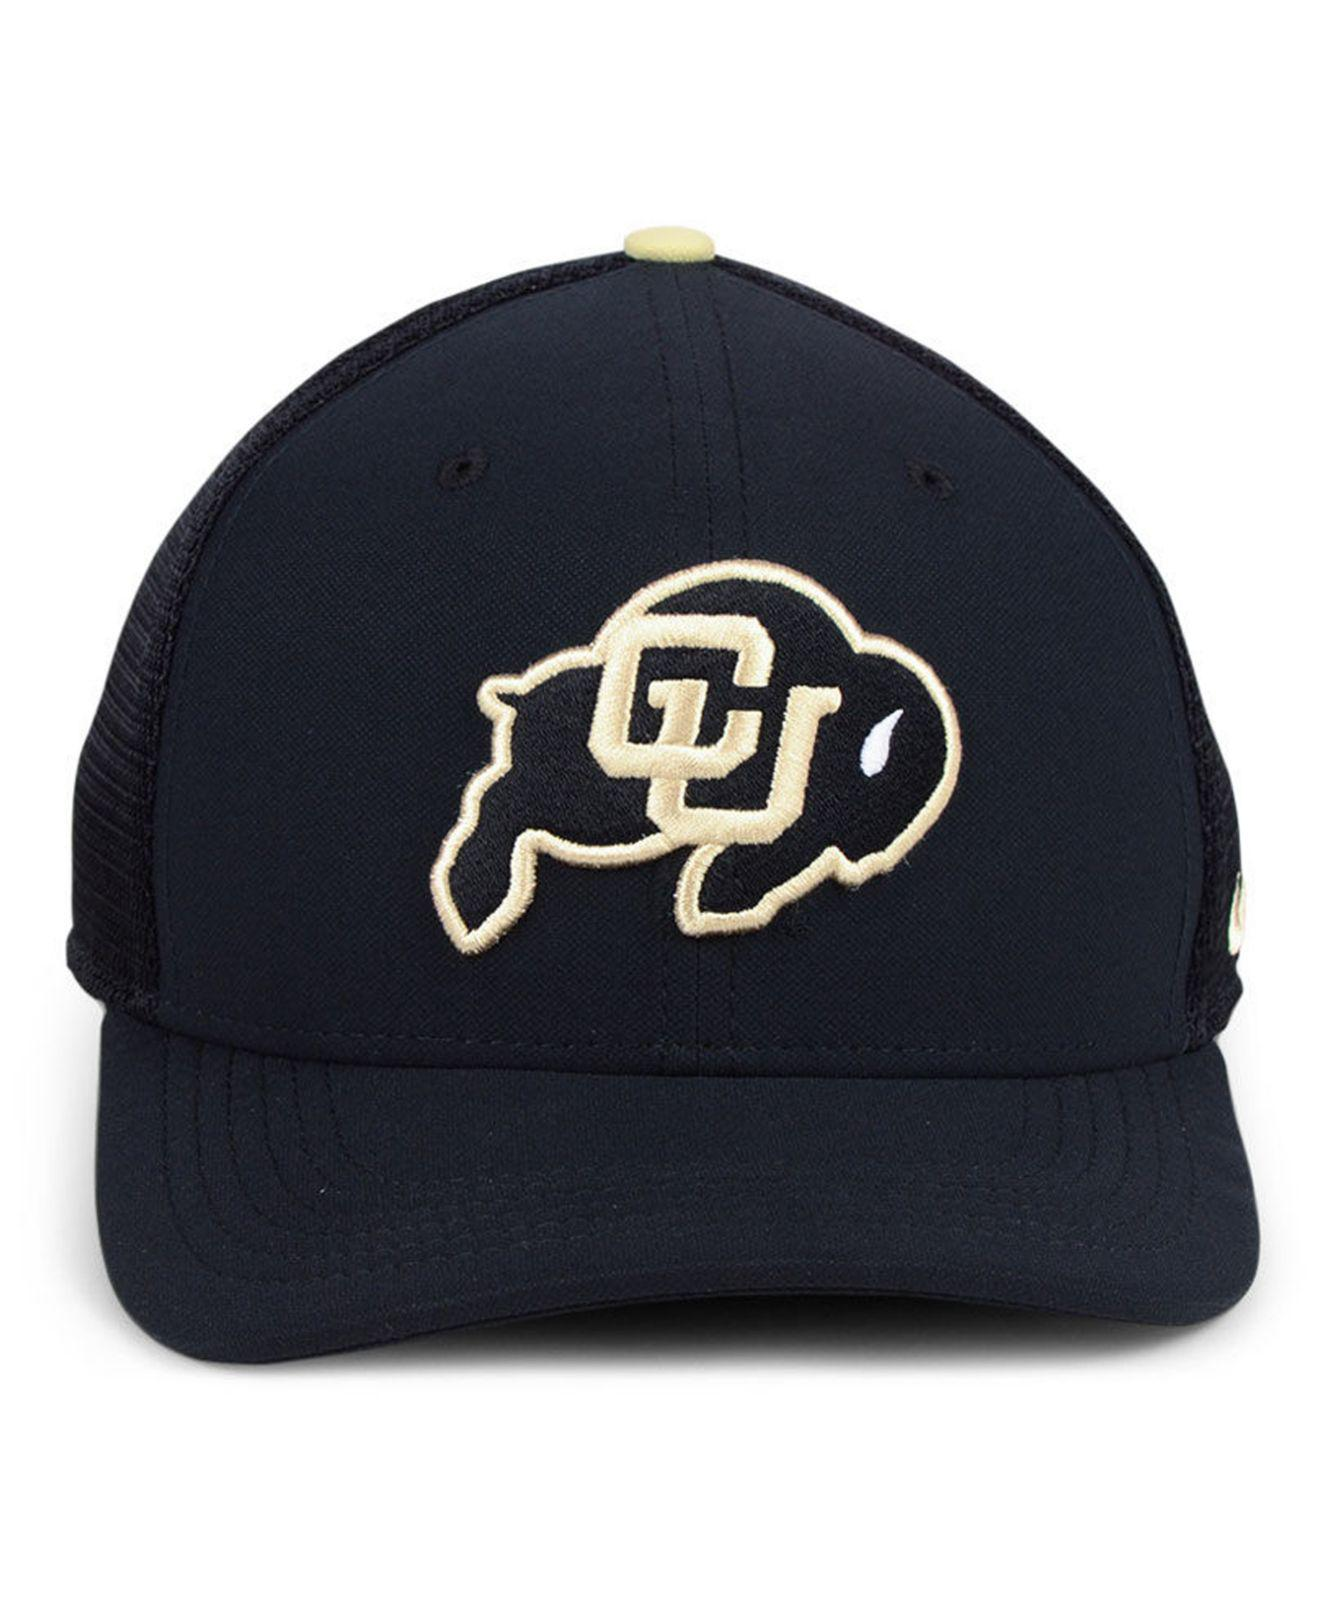 c13c2777c753e new arrivals colorado buffaloes nike ncaa legend swooshflex cap ...